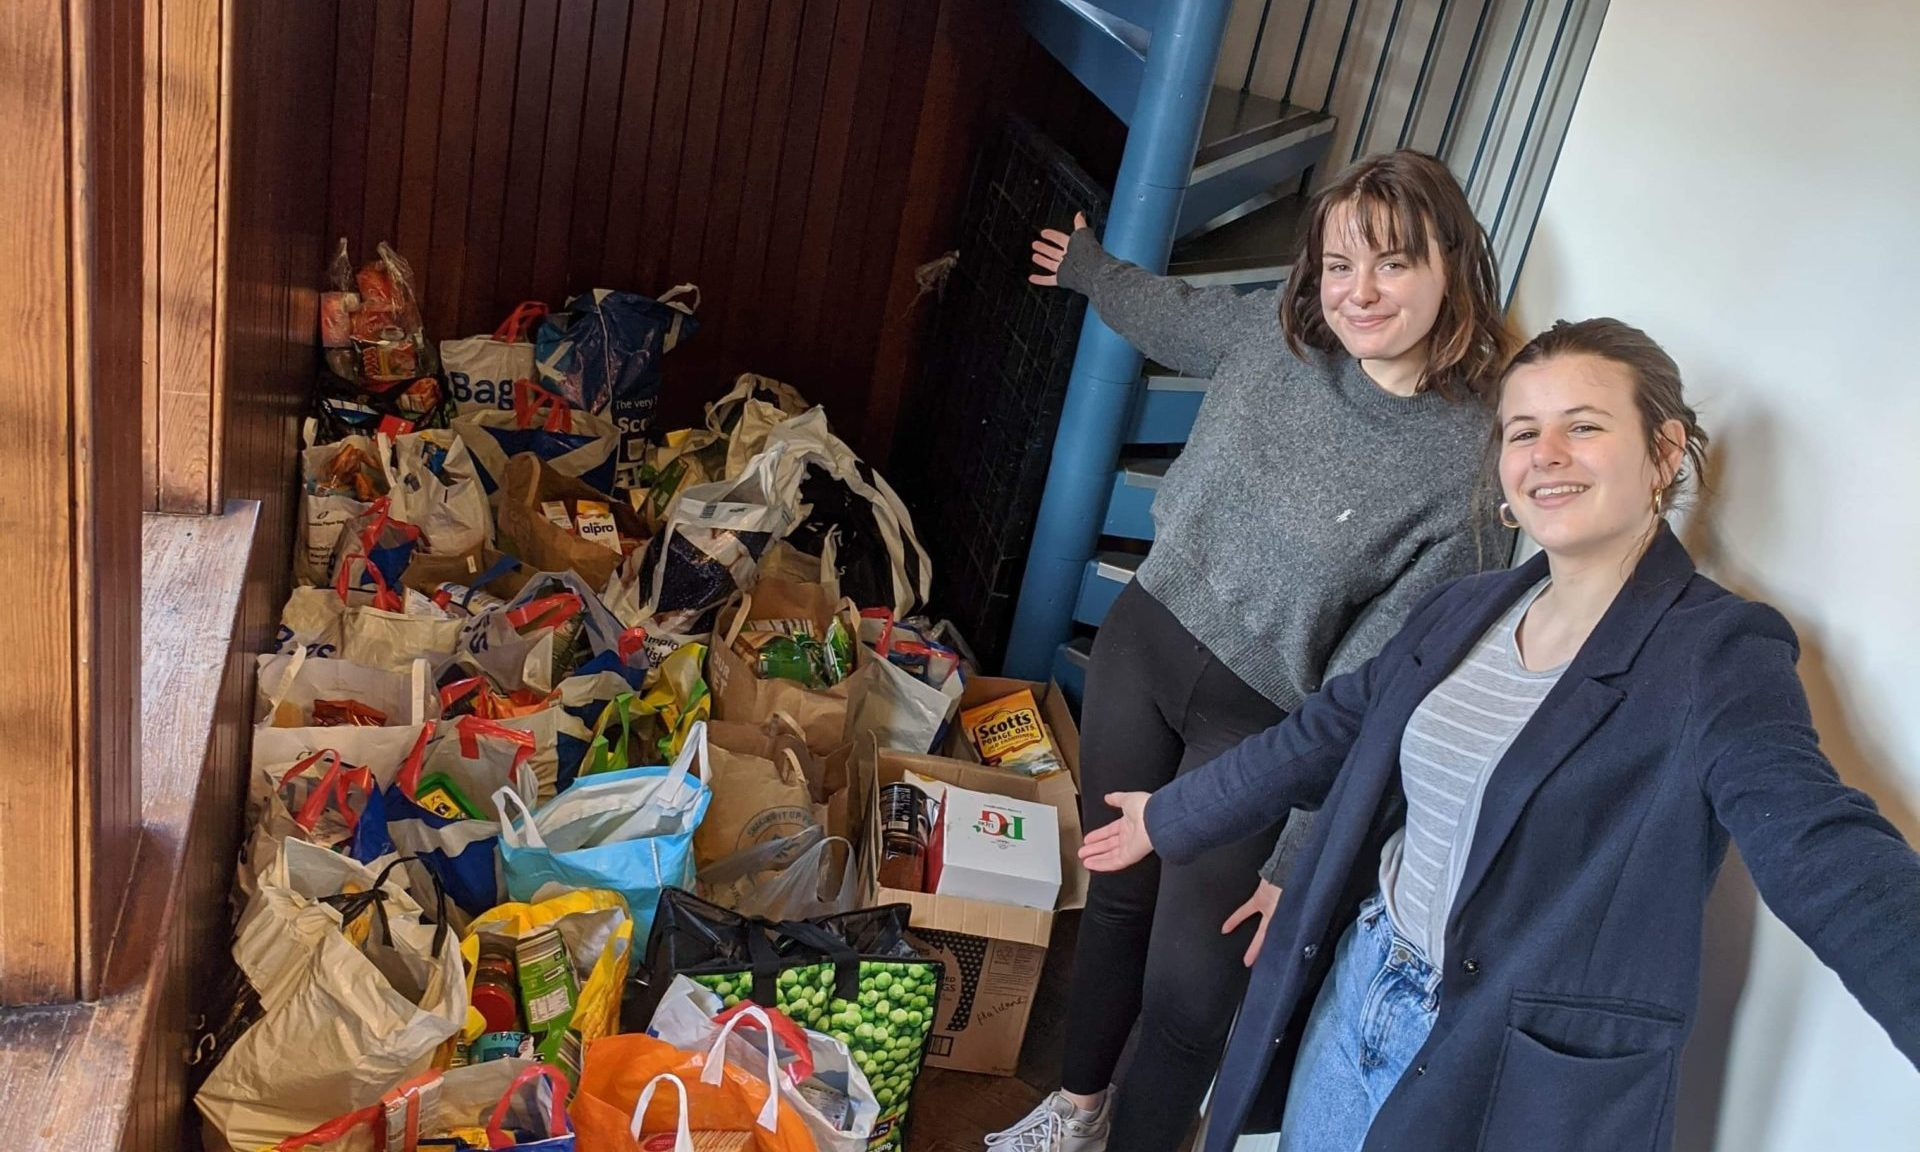 Students Lottie Doherty and Ruby Newsham with foodbank donations.